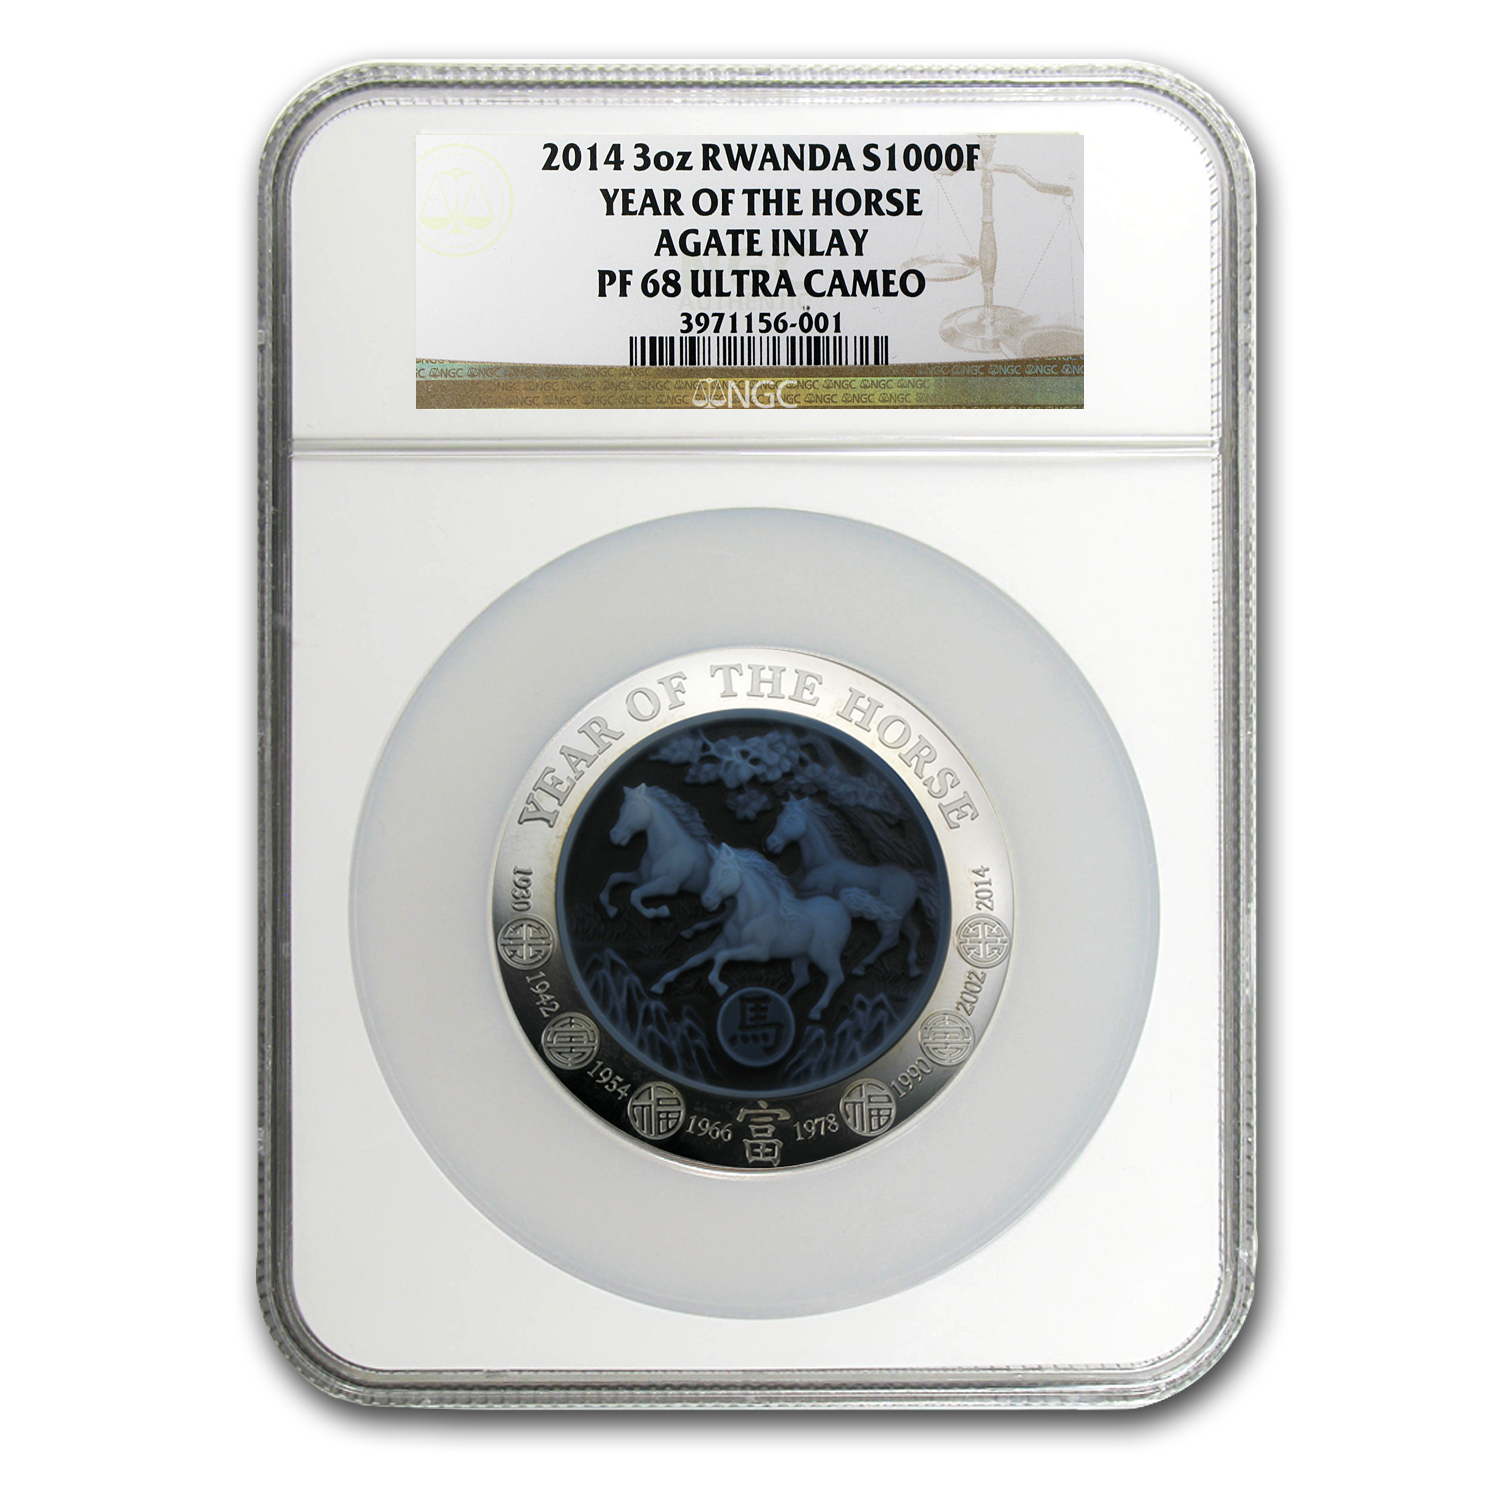 2014 Rwanda 3 oz Silver Year of the Horse Agate PF-68 NGC